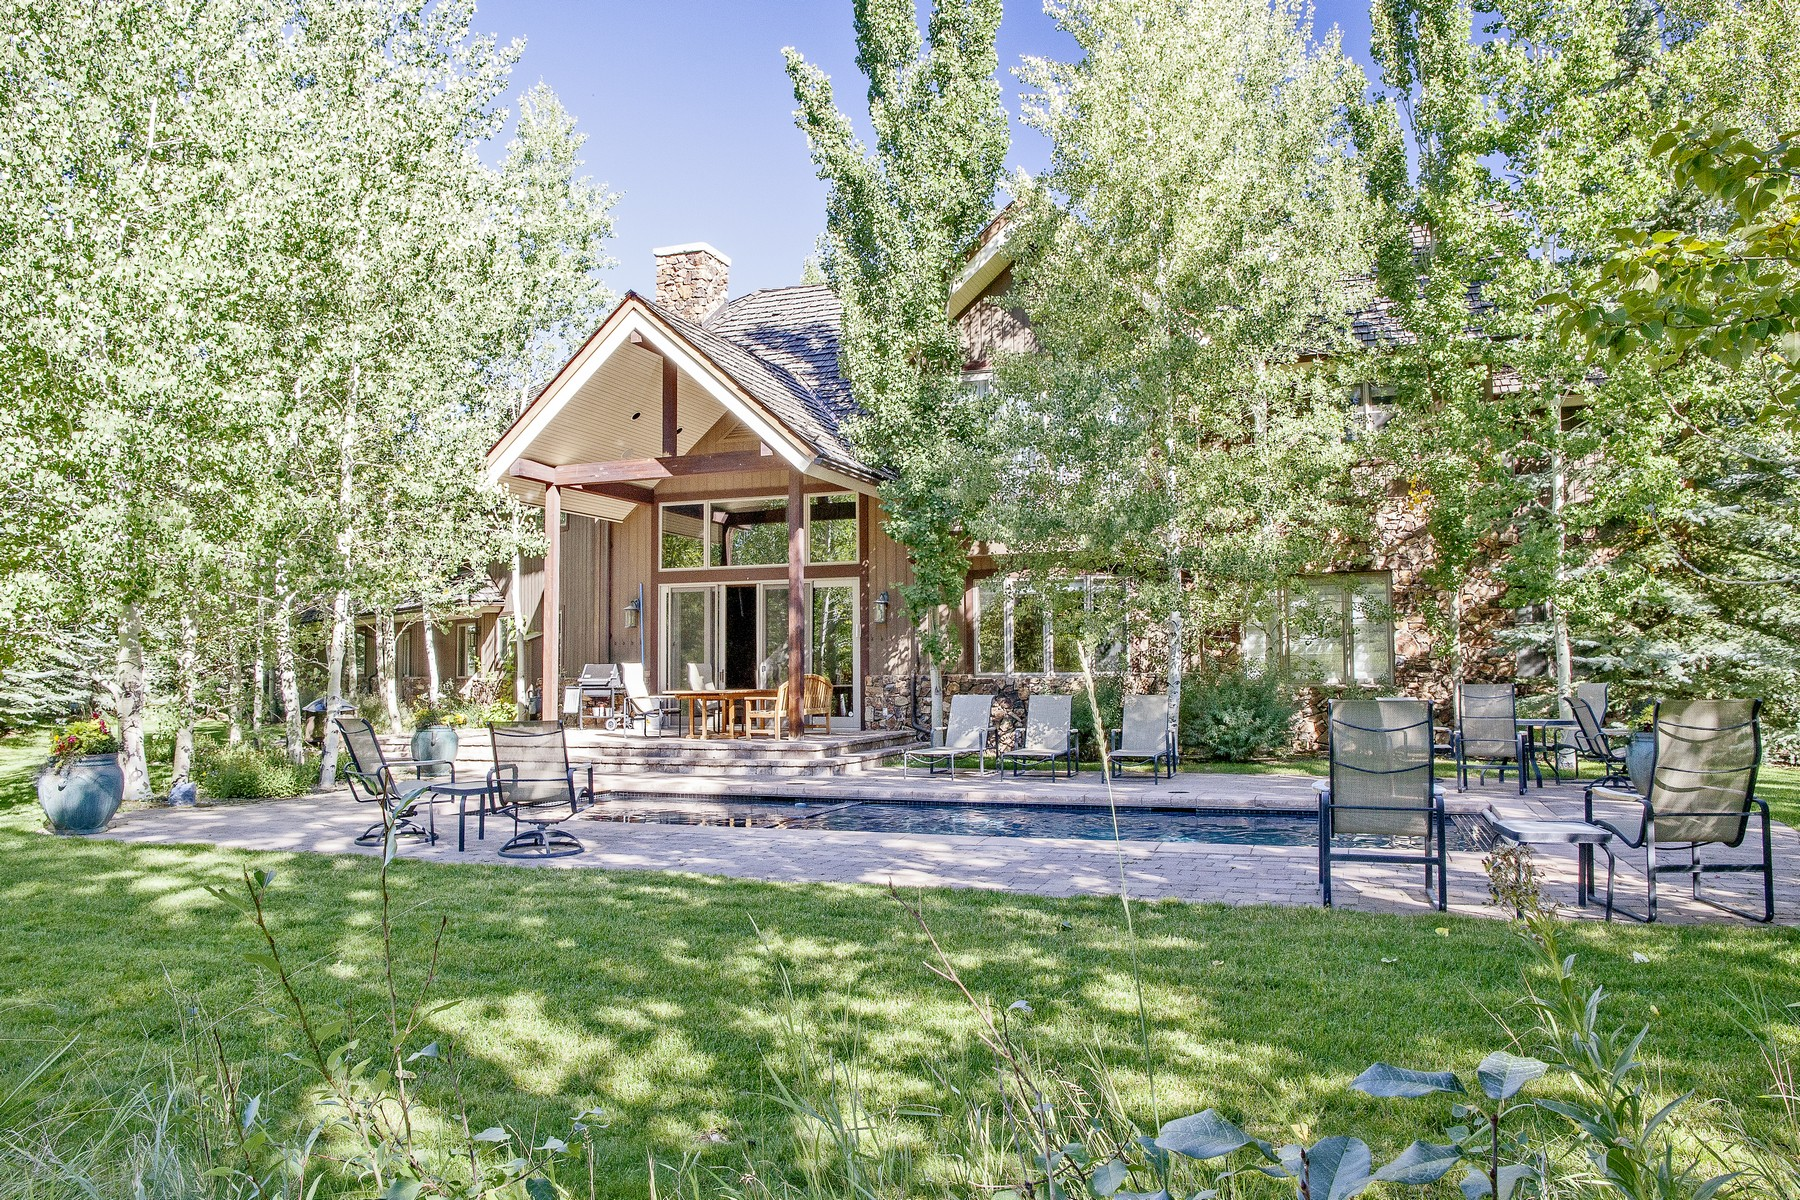 Additional photo for property listing at Spectacular Home Near the Big Wood River 33 Cliffside Dr Ketchum, Idaho 83340 United States